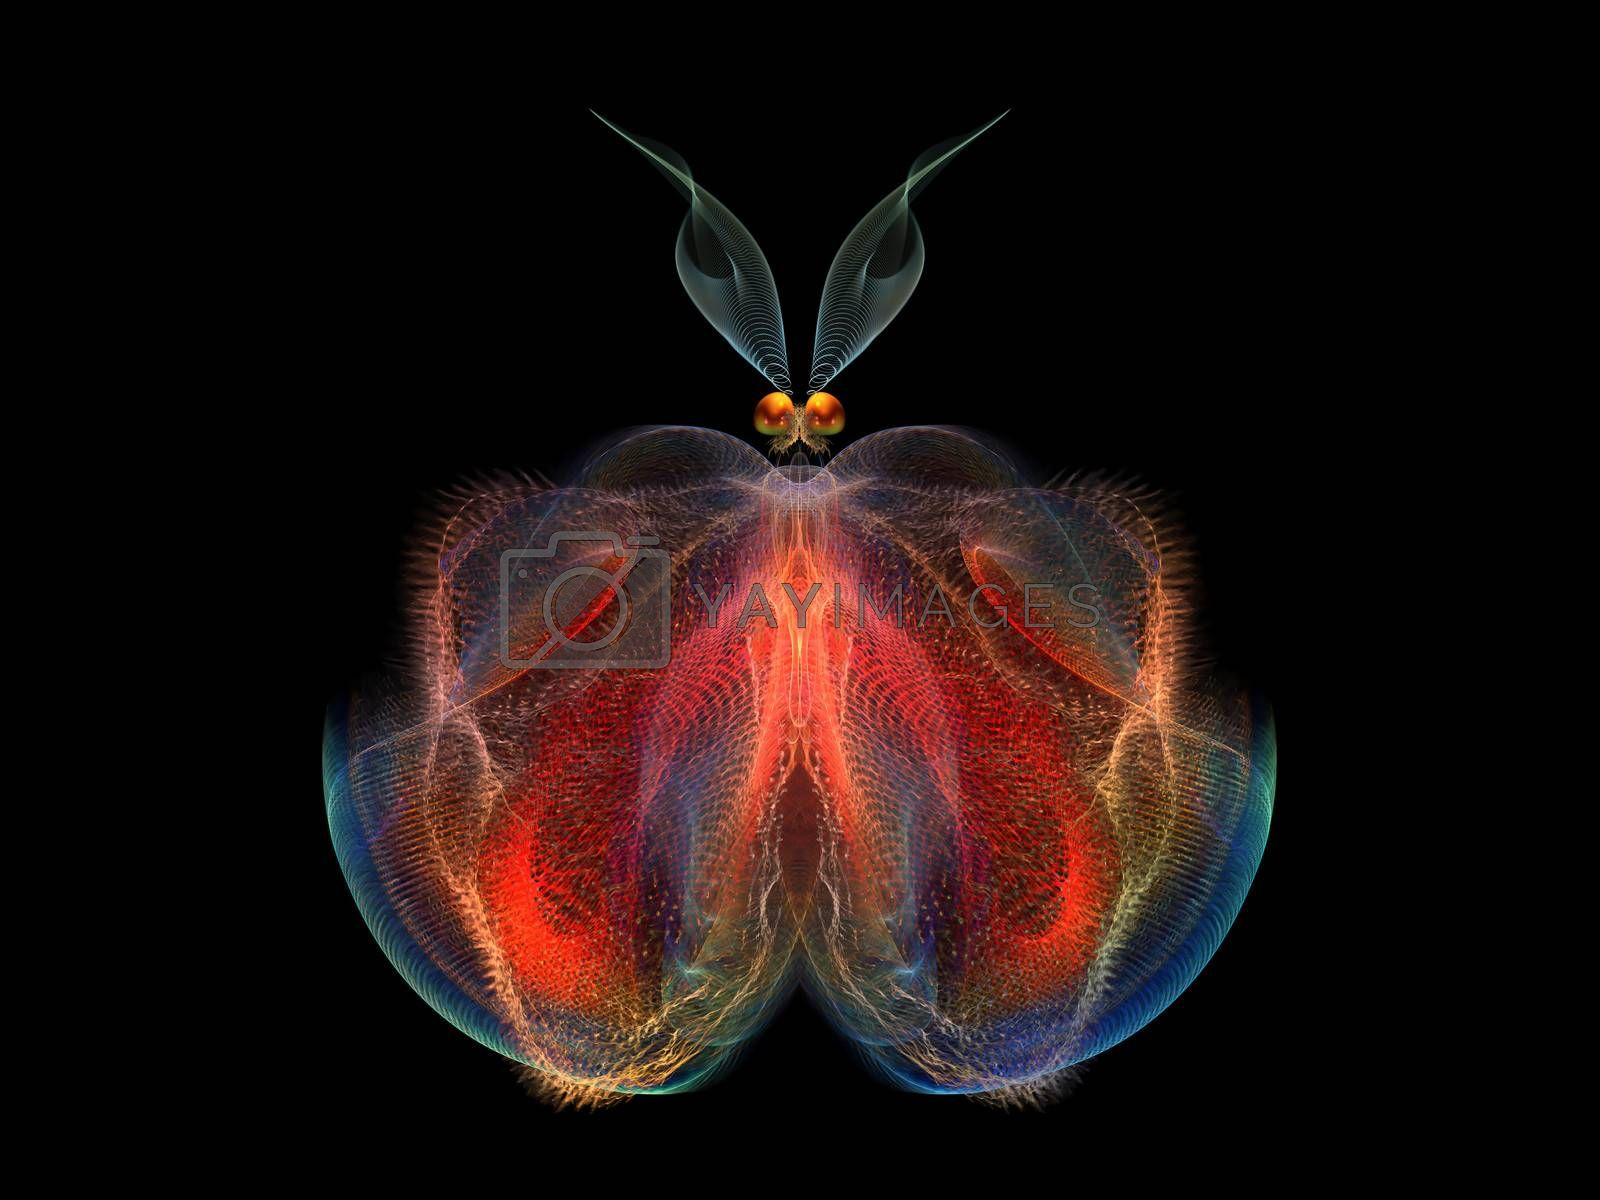 Butterflies of Never series. Abstract design made of fractal organic textures on the subject of science, biology,  design, creativity and imagination